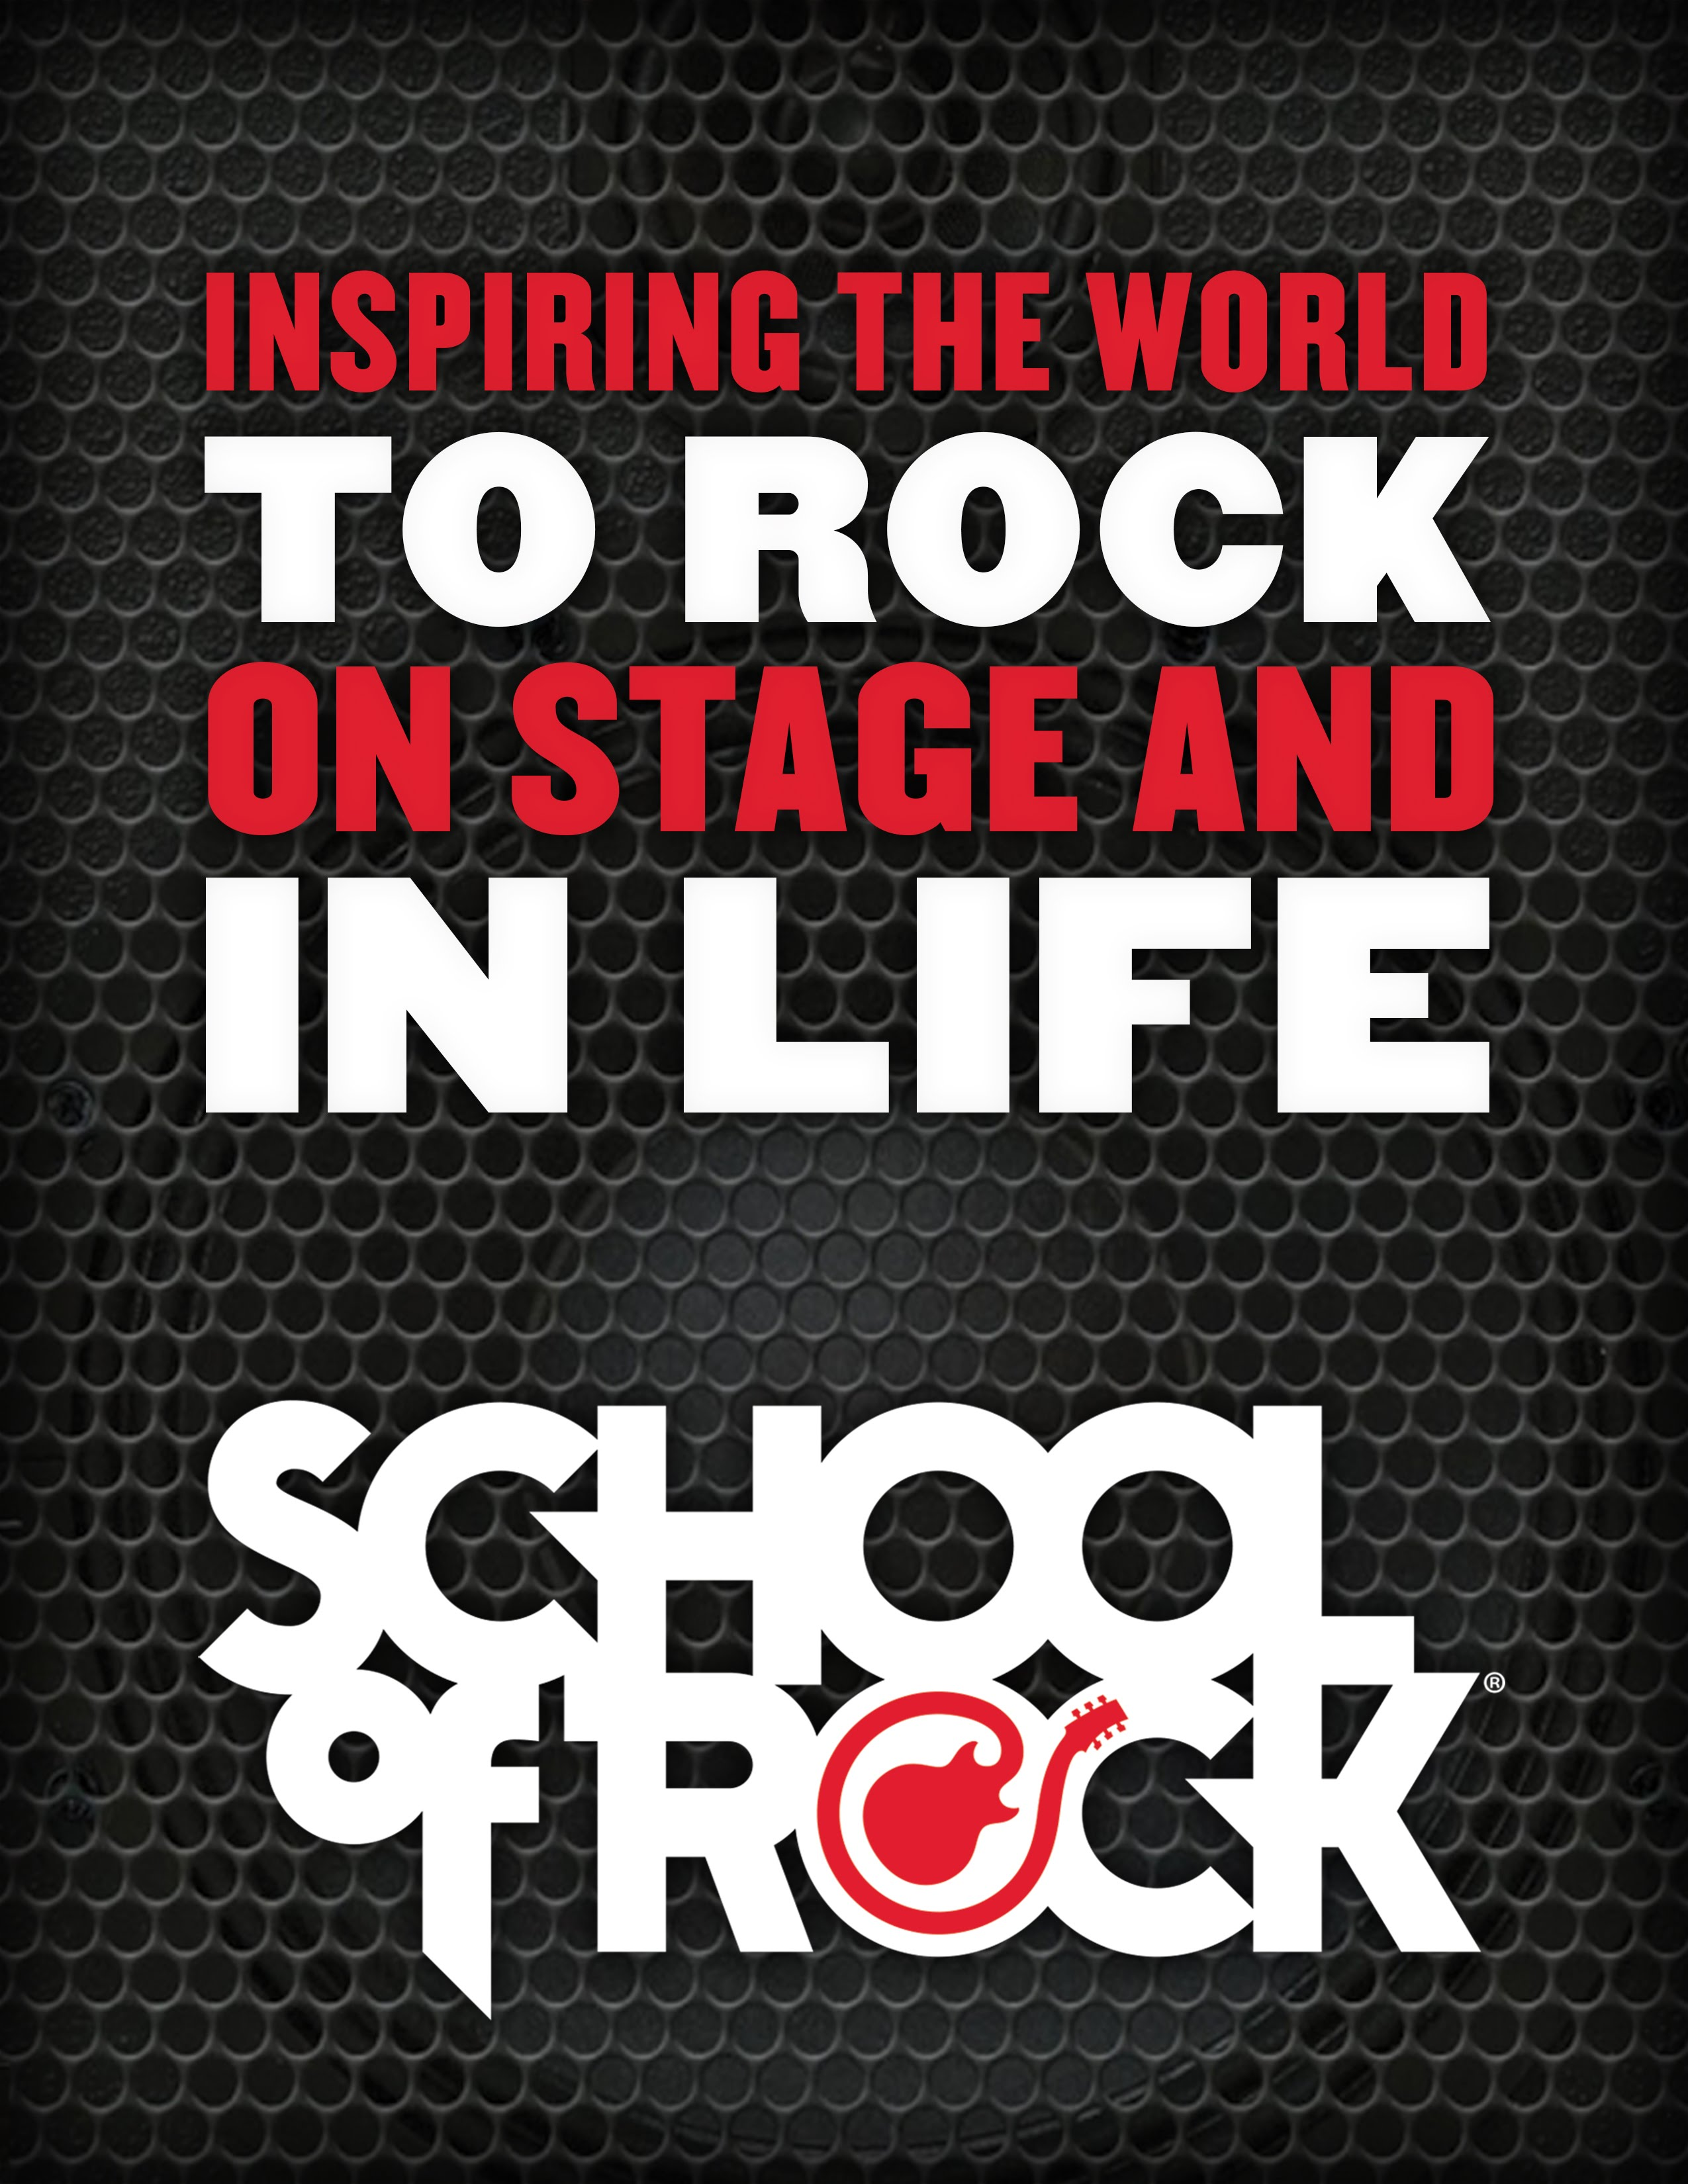 School of Rock Markham